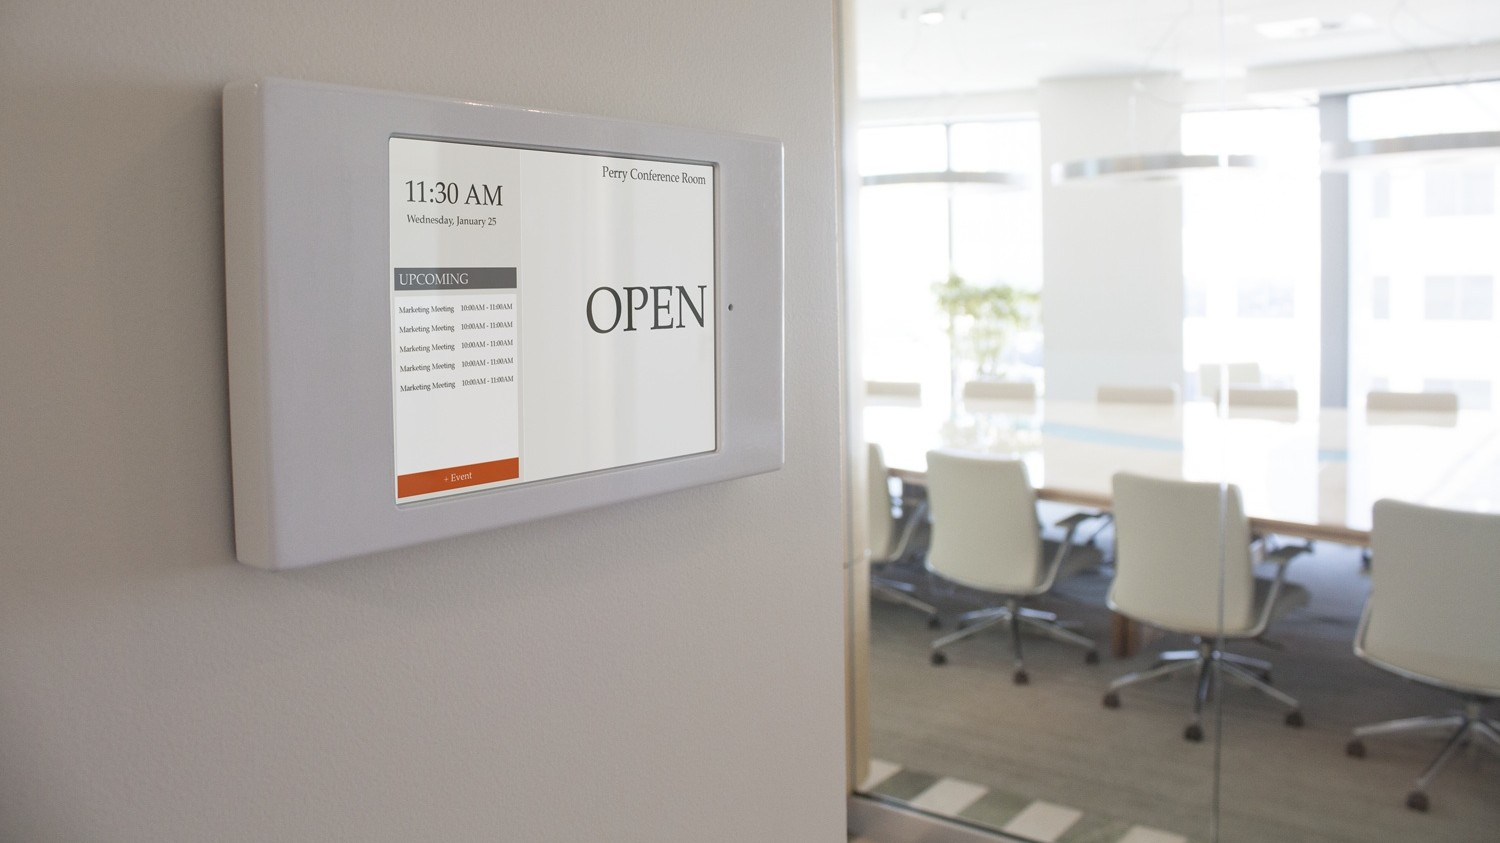 Conference Room Schedule Display Solutions 4 Suggestions Ubiq